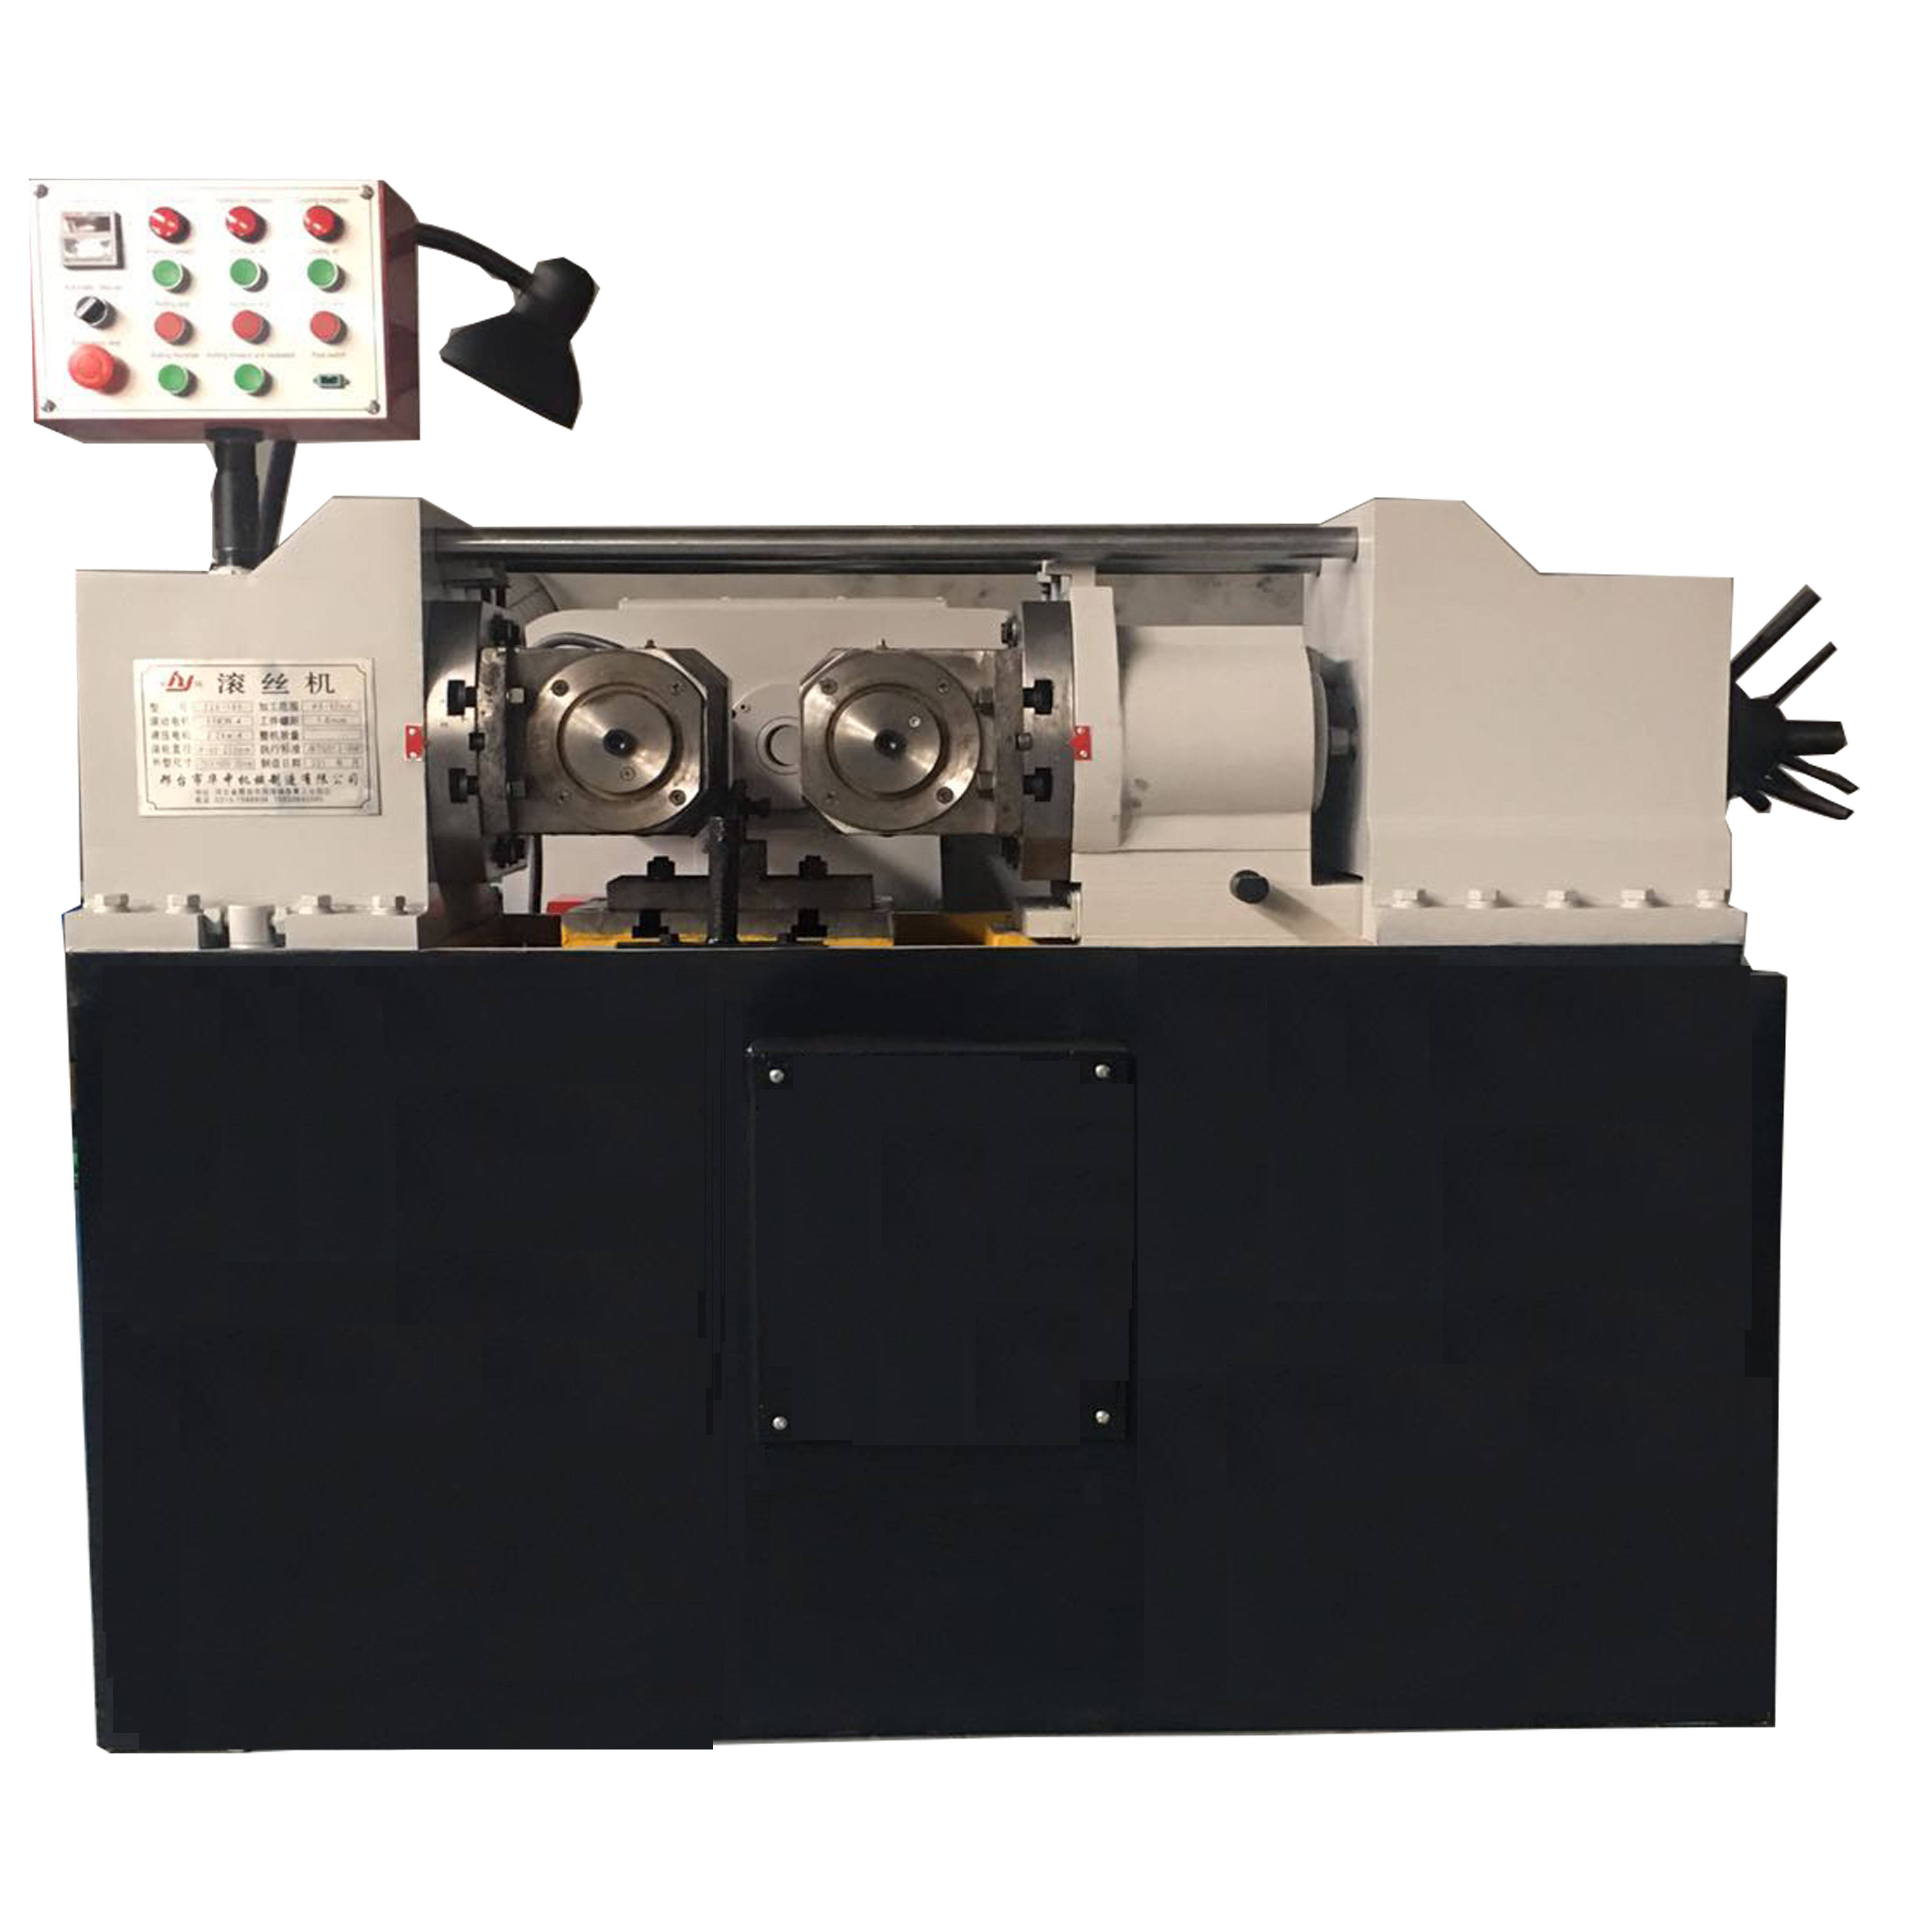 Automatic hydraulic thread rolling machine machine screw thread rolling machine High-speed thread rolling price